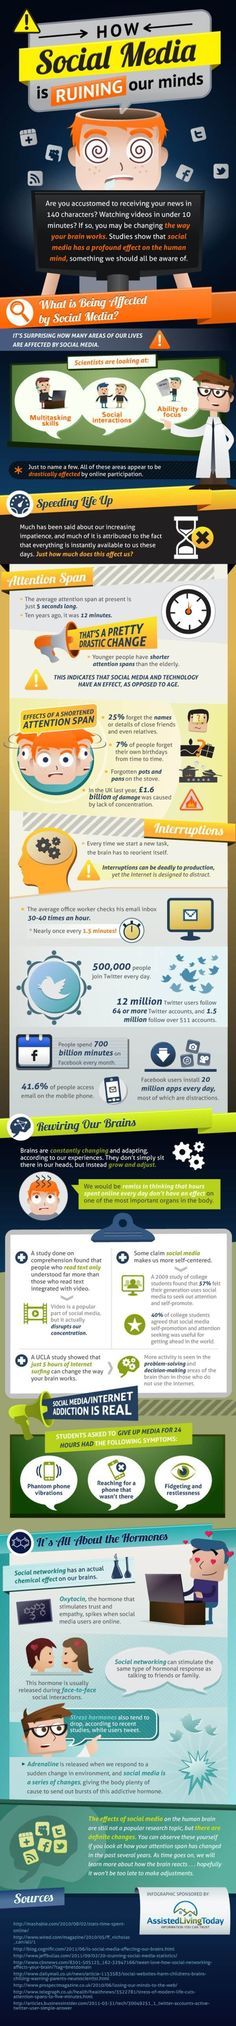 This infographic shows how social media is running our minds